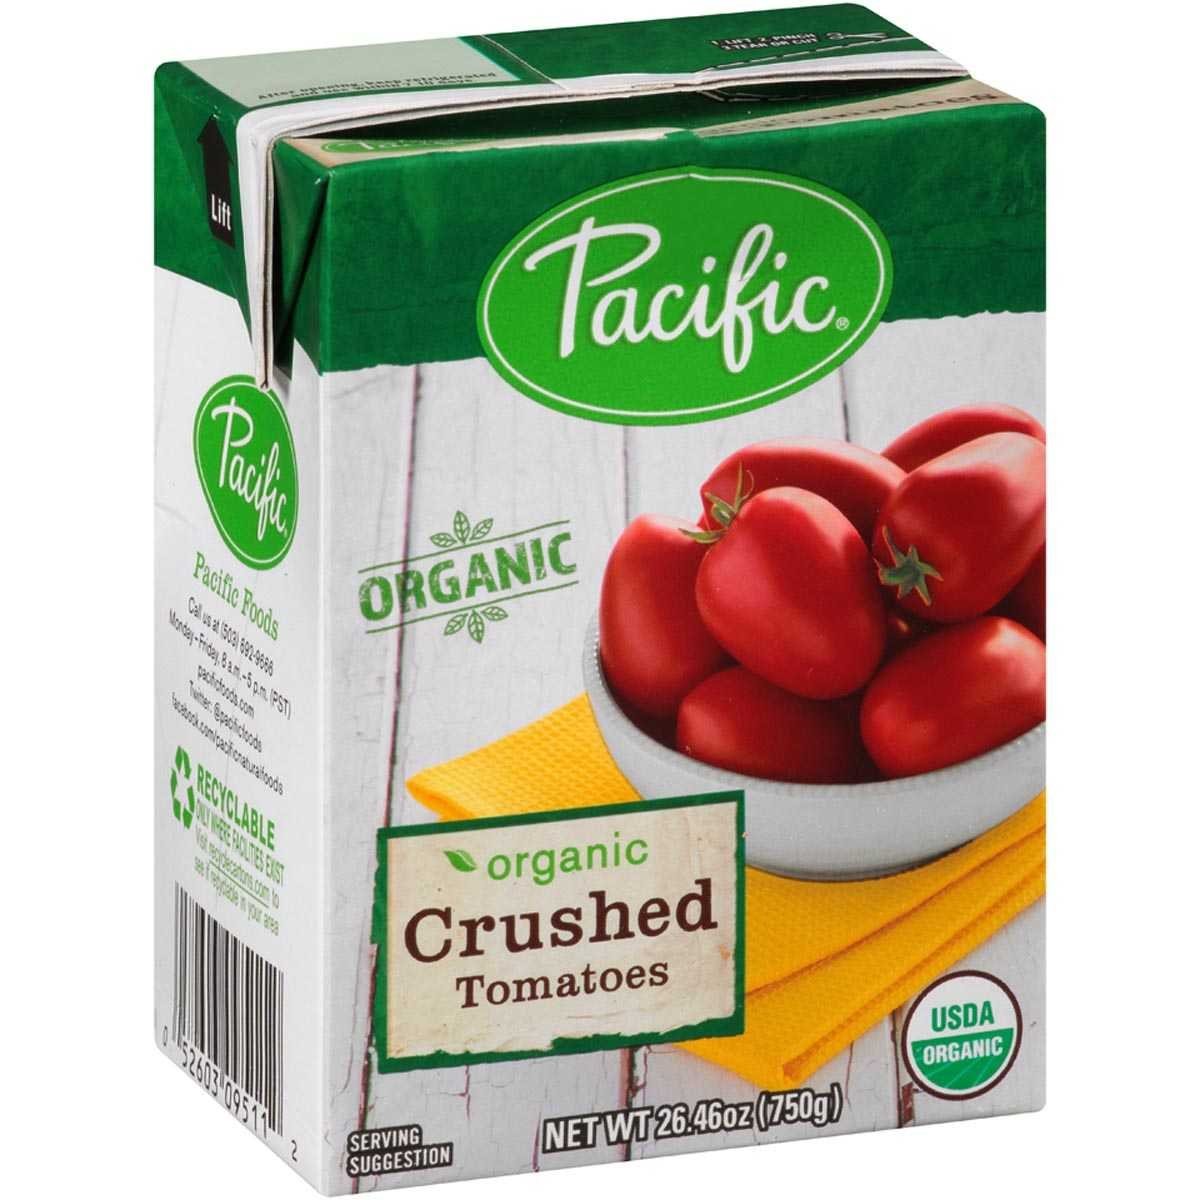 Pacific Foods Organic Crushed Tomatoes, 26.46 Ounce (Pack of 12)